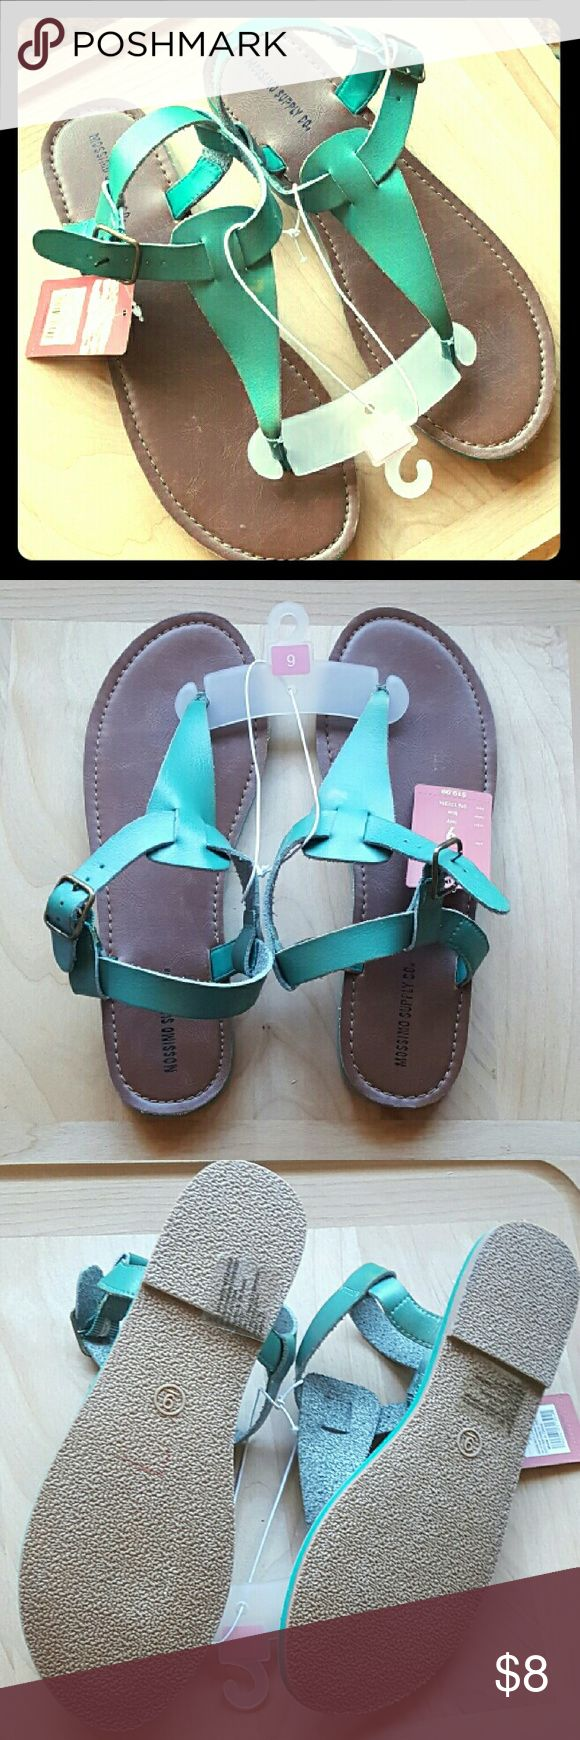 NWT Teal Sandals Mossimo Size 9 New with tags pair of teal sandals. Mossimo brand, size 9.  Never worn. The right sandal has a small area of discoloration, 1/2 inch in size at most. Not sure what it is, it isn't a stain - looks like a little bleached spot? Spot shown in the last pic.  Otherwise in perfect condition. Originally priced $19.99  Comes from a smoke free home! I also offer bundle discounts so check out my closet!  I always ship same or next day :) Mossimo Supply Co. Shoes Sandals